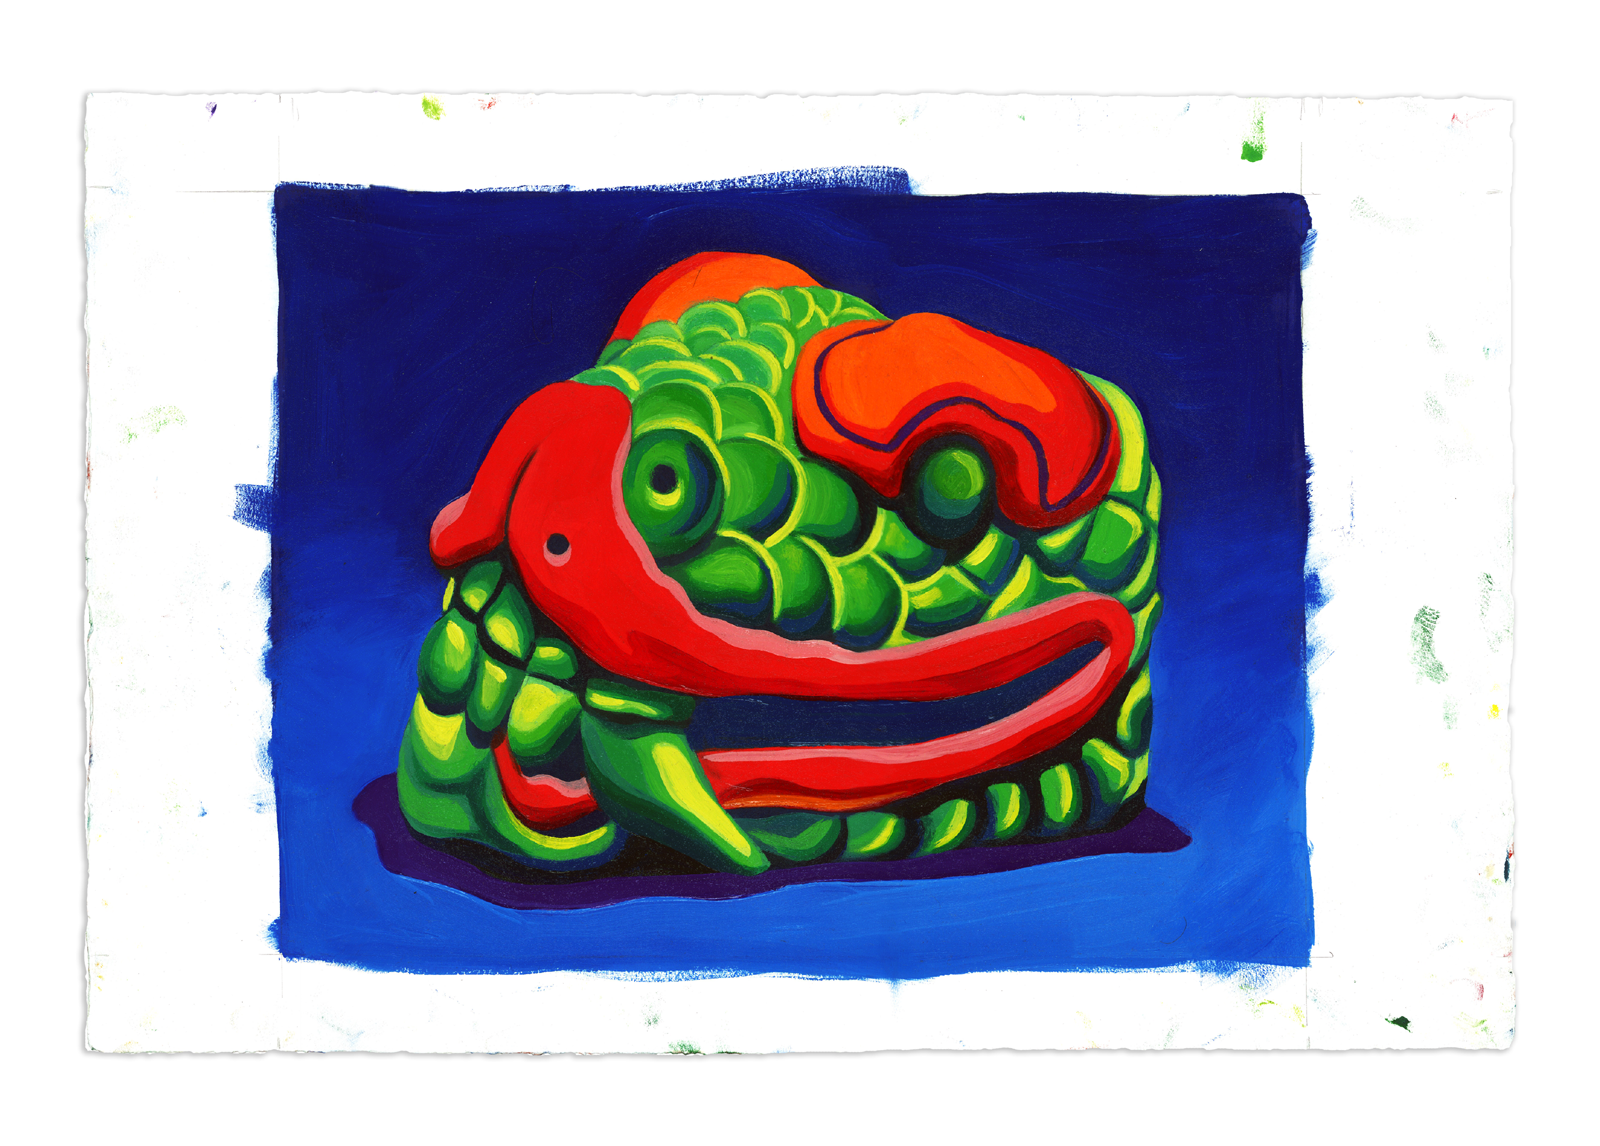 Quetzalcoatl - Oil at 12 x 16 in. on 22 x 15 in. BFK Rives